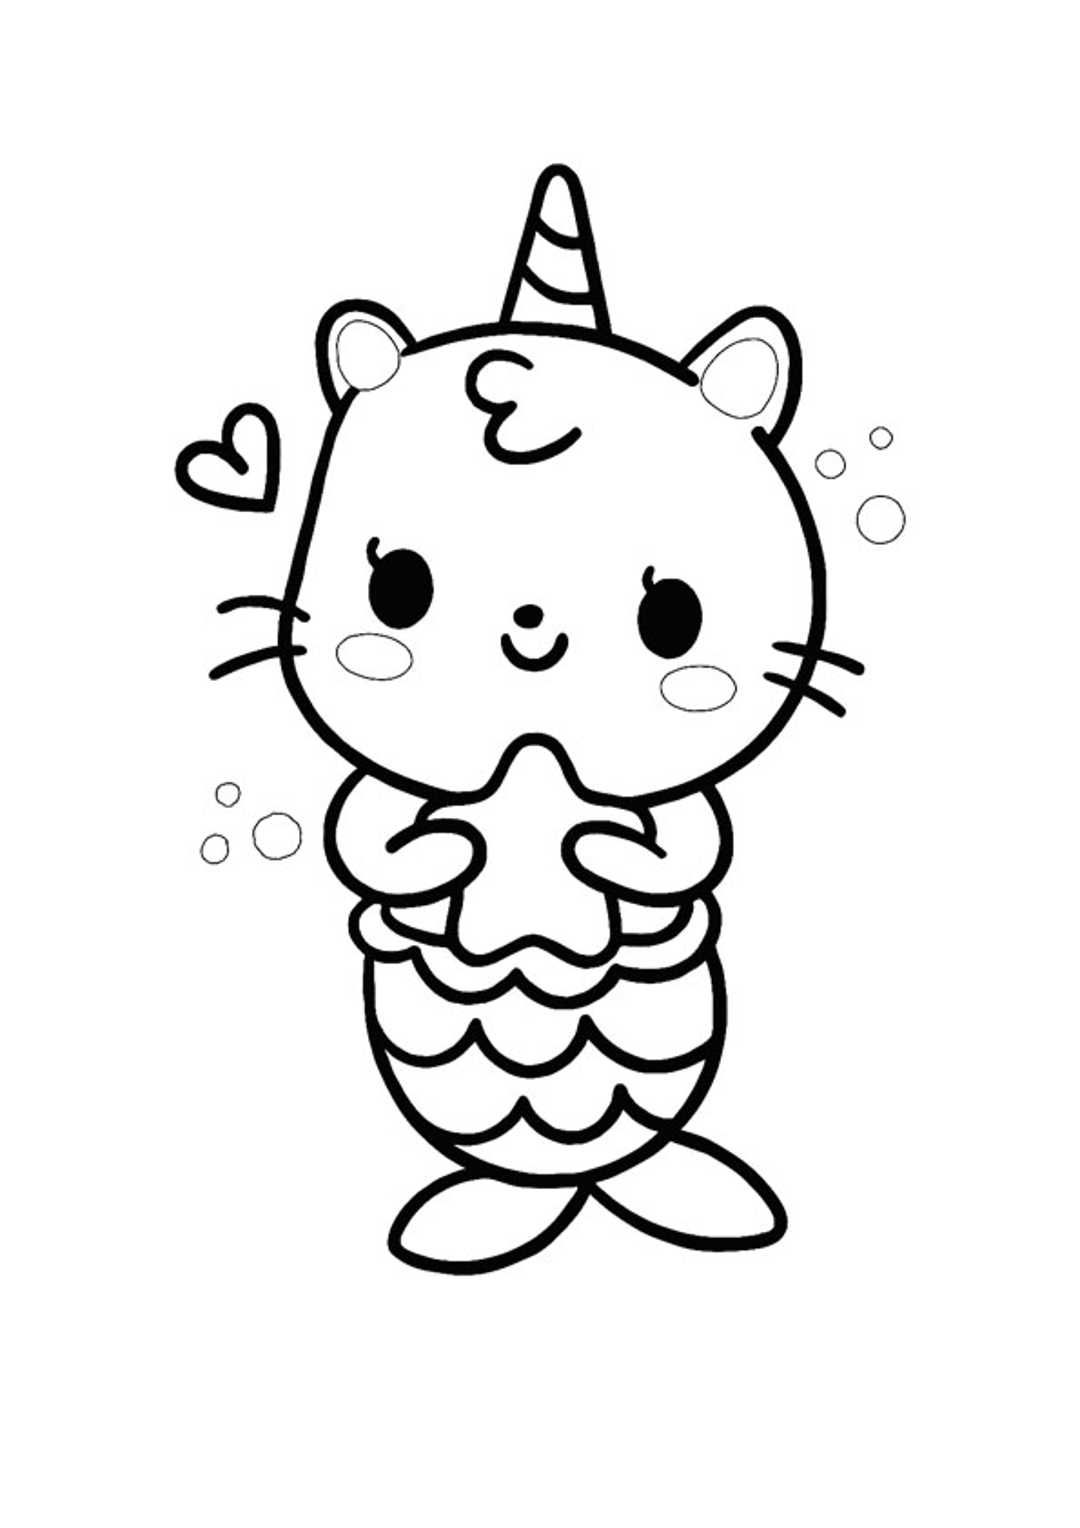 Unicorn Cat Mermaid Coloring Page